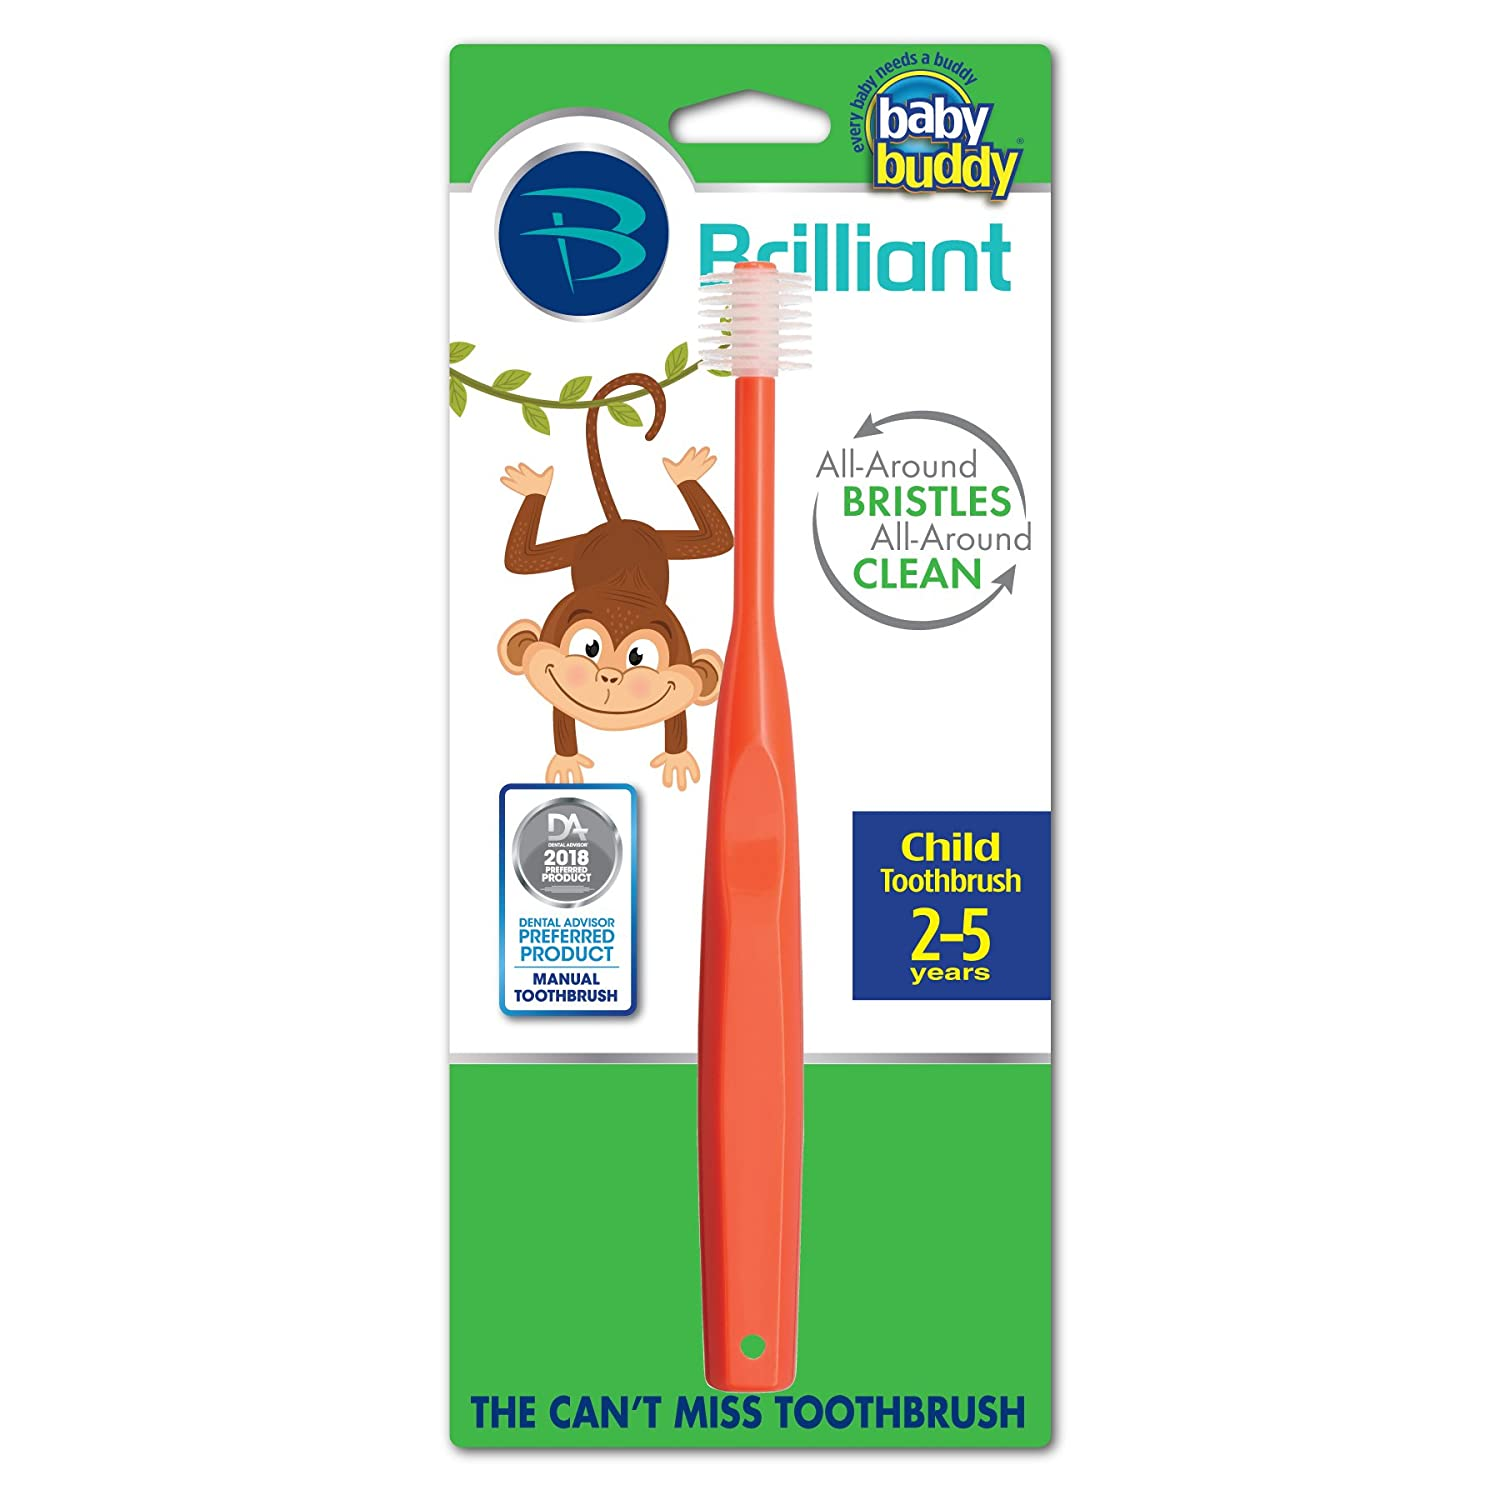 Brilliant Child Toothbrush by Baby Buddy - For Ages 2+ Years, BPA Free Super-Fine Micro Bristles Clean All-Around Mouth, Kids Love Them, Red, 3 Count 03576RD